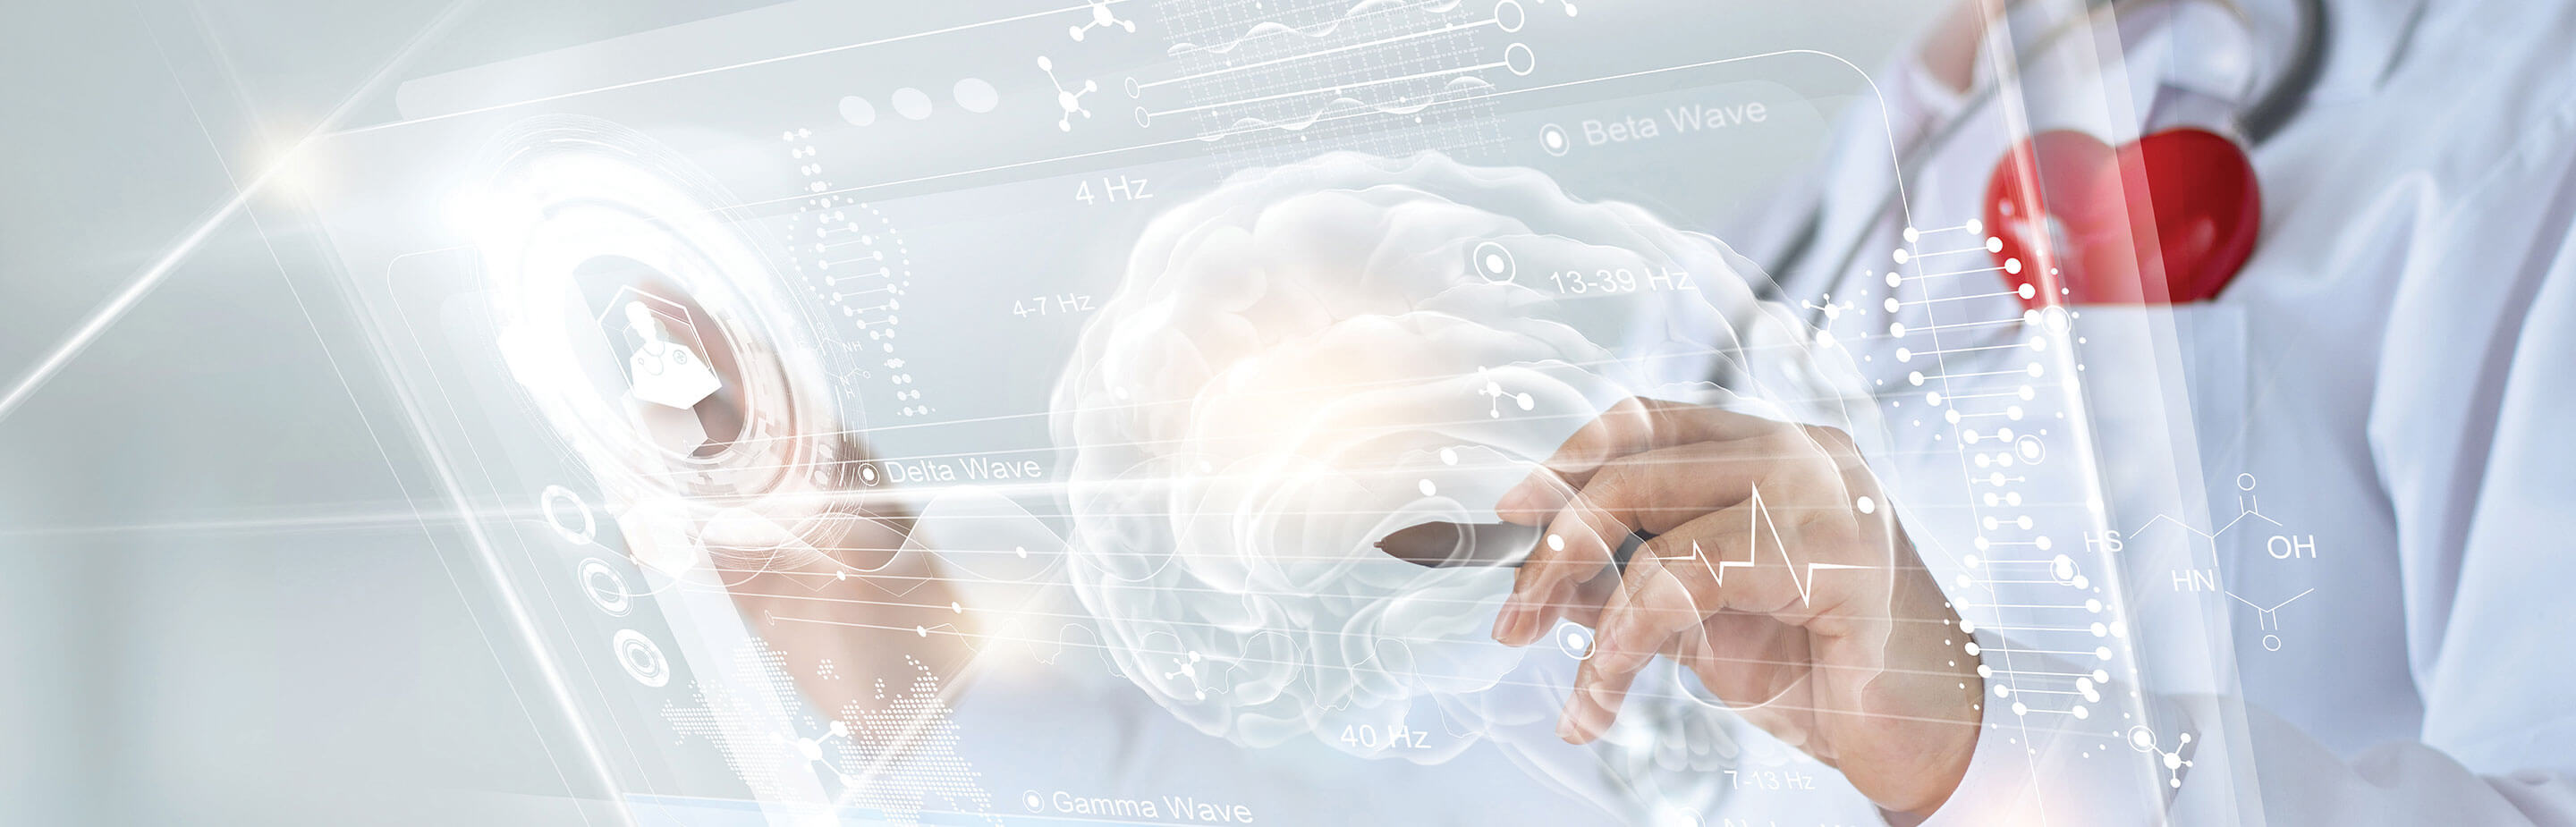 graphic illustration of a doctor pointing at a holographic image on the brain